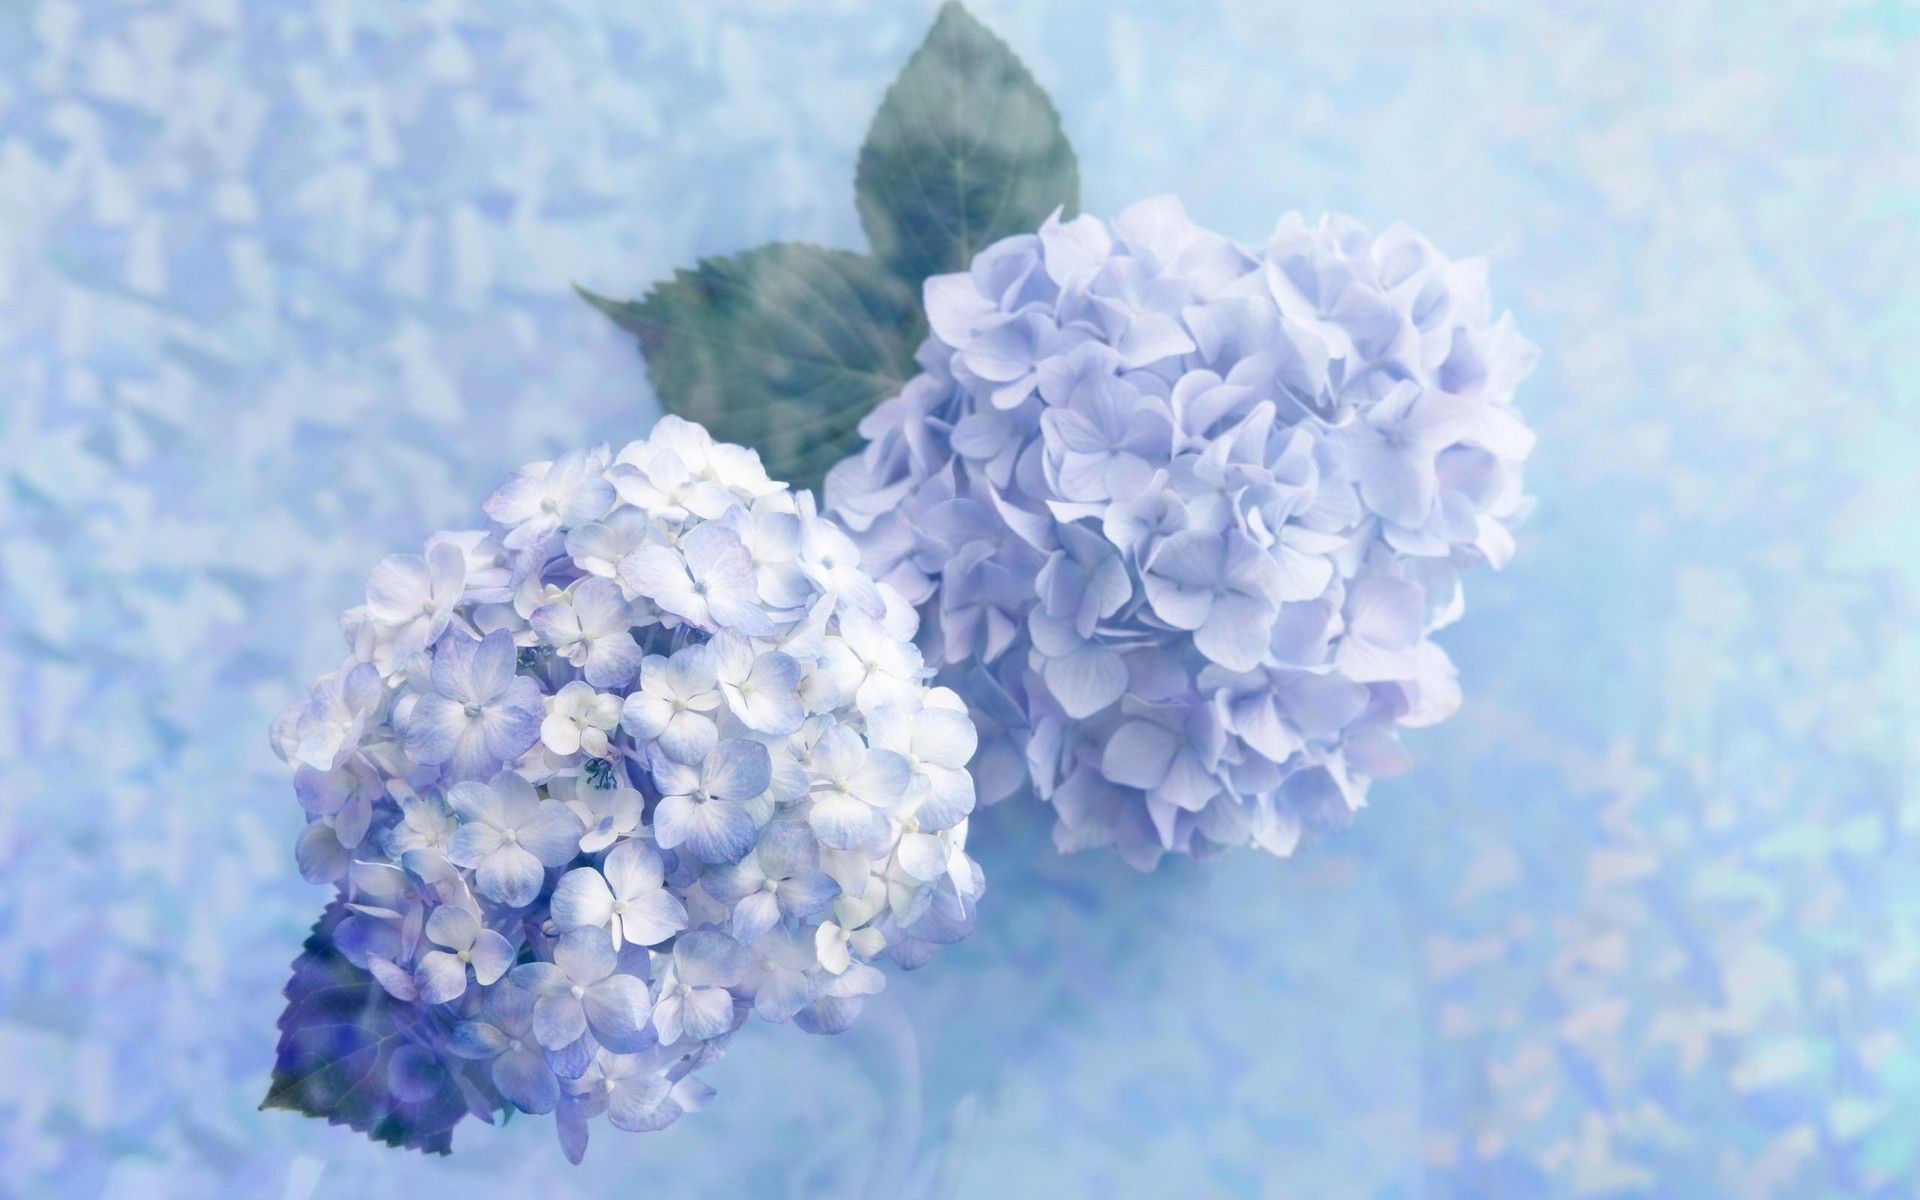 Flowers Hydrangea Wallpaper 1881241 Wallbase Cc Hydrangea Wallpaper Flower Wallpaper Artificial Hydrangea Flowers